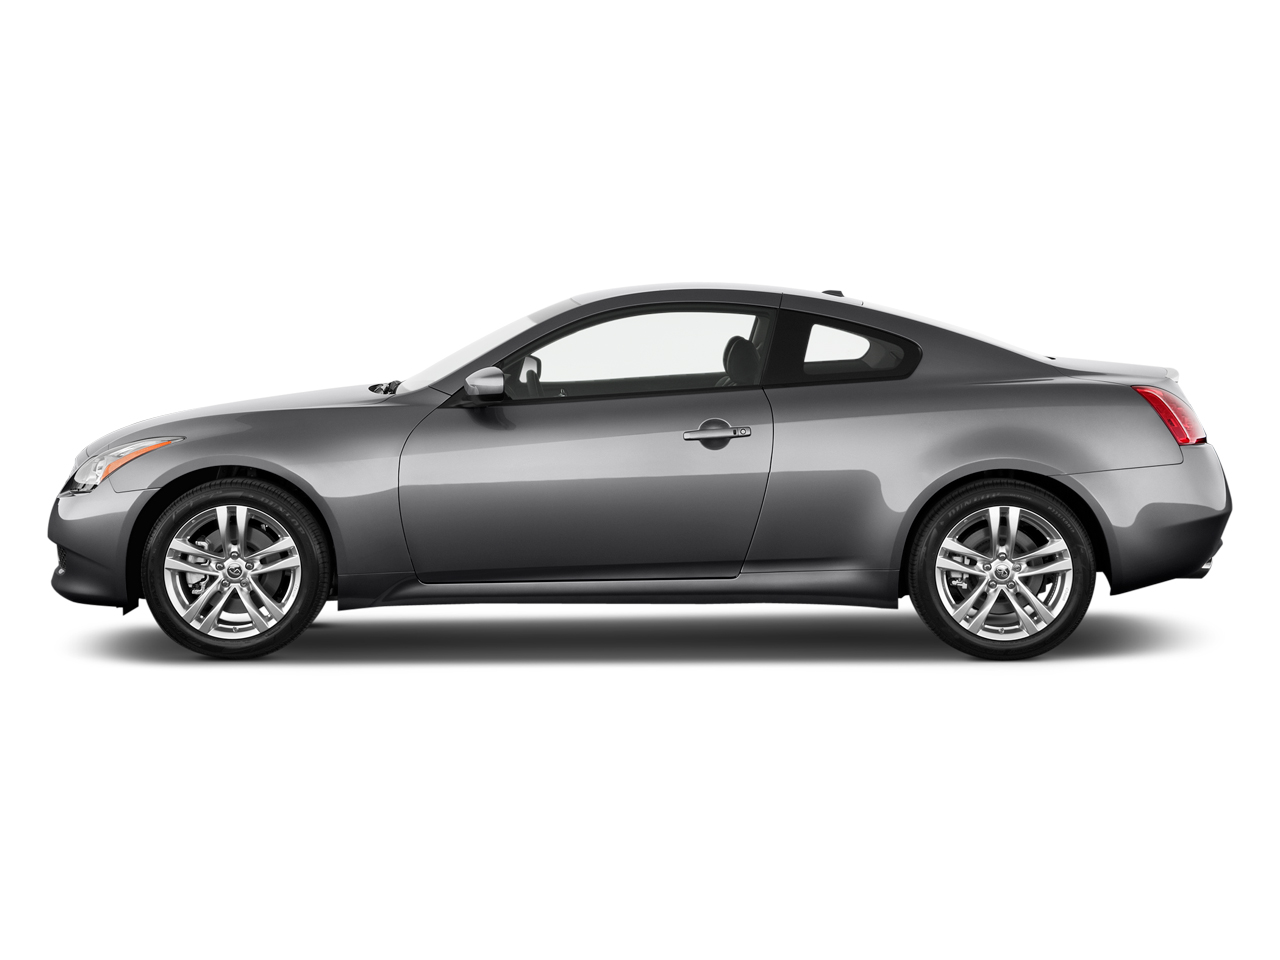 2010 Infiniti G37 Coupe Awd Effortless Exhilaration